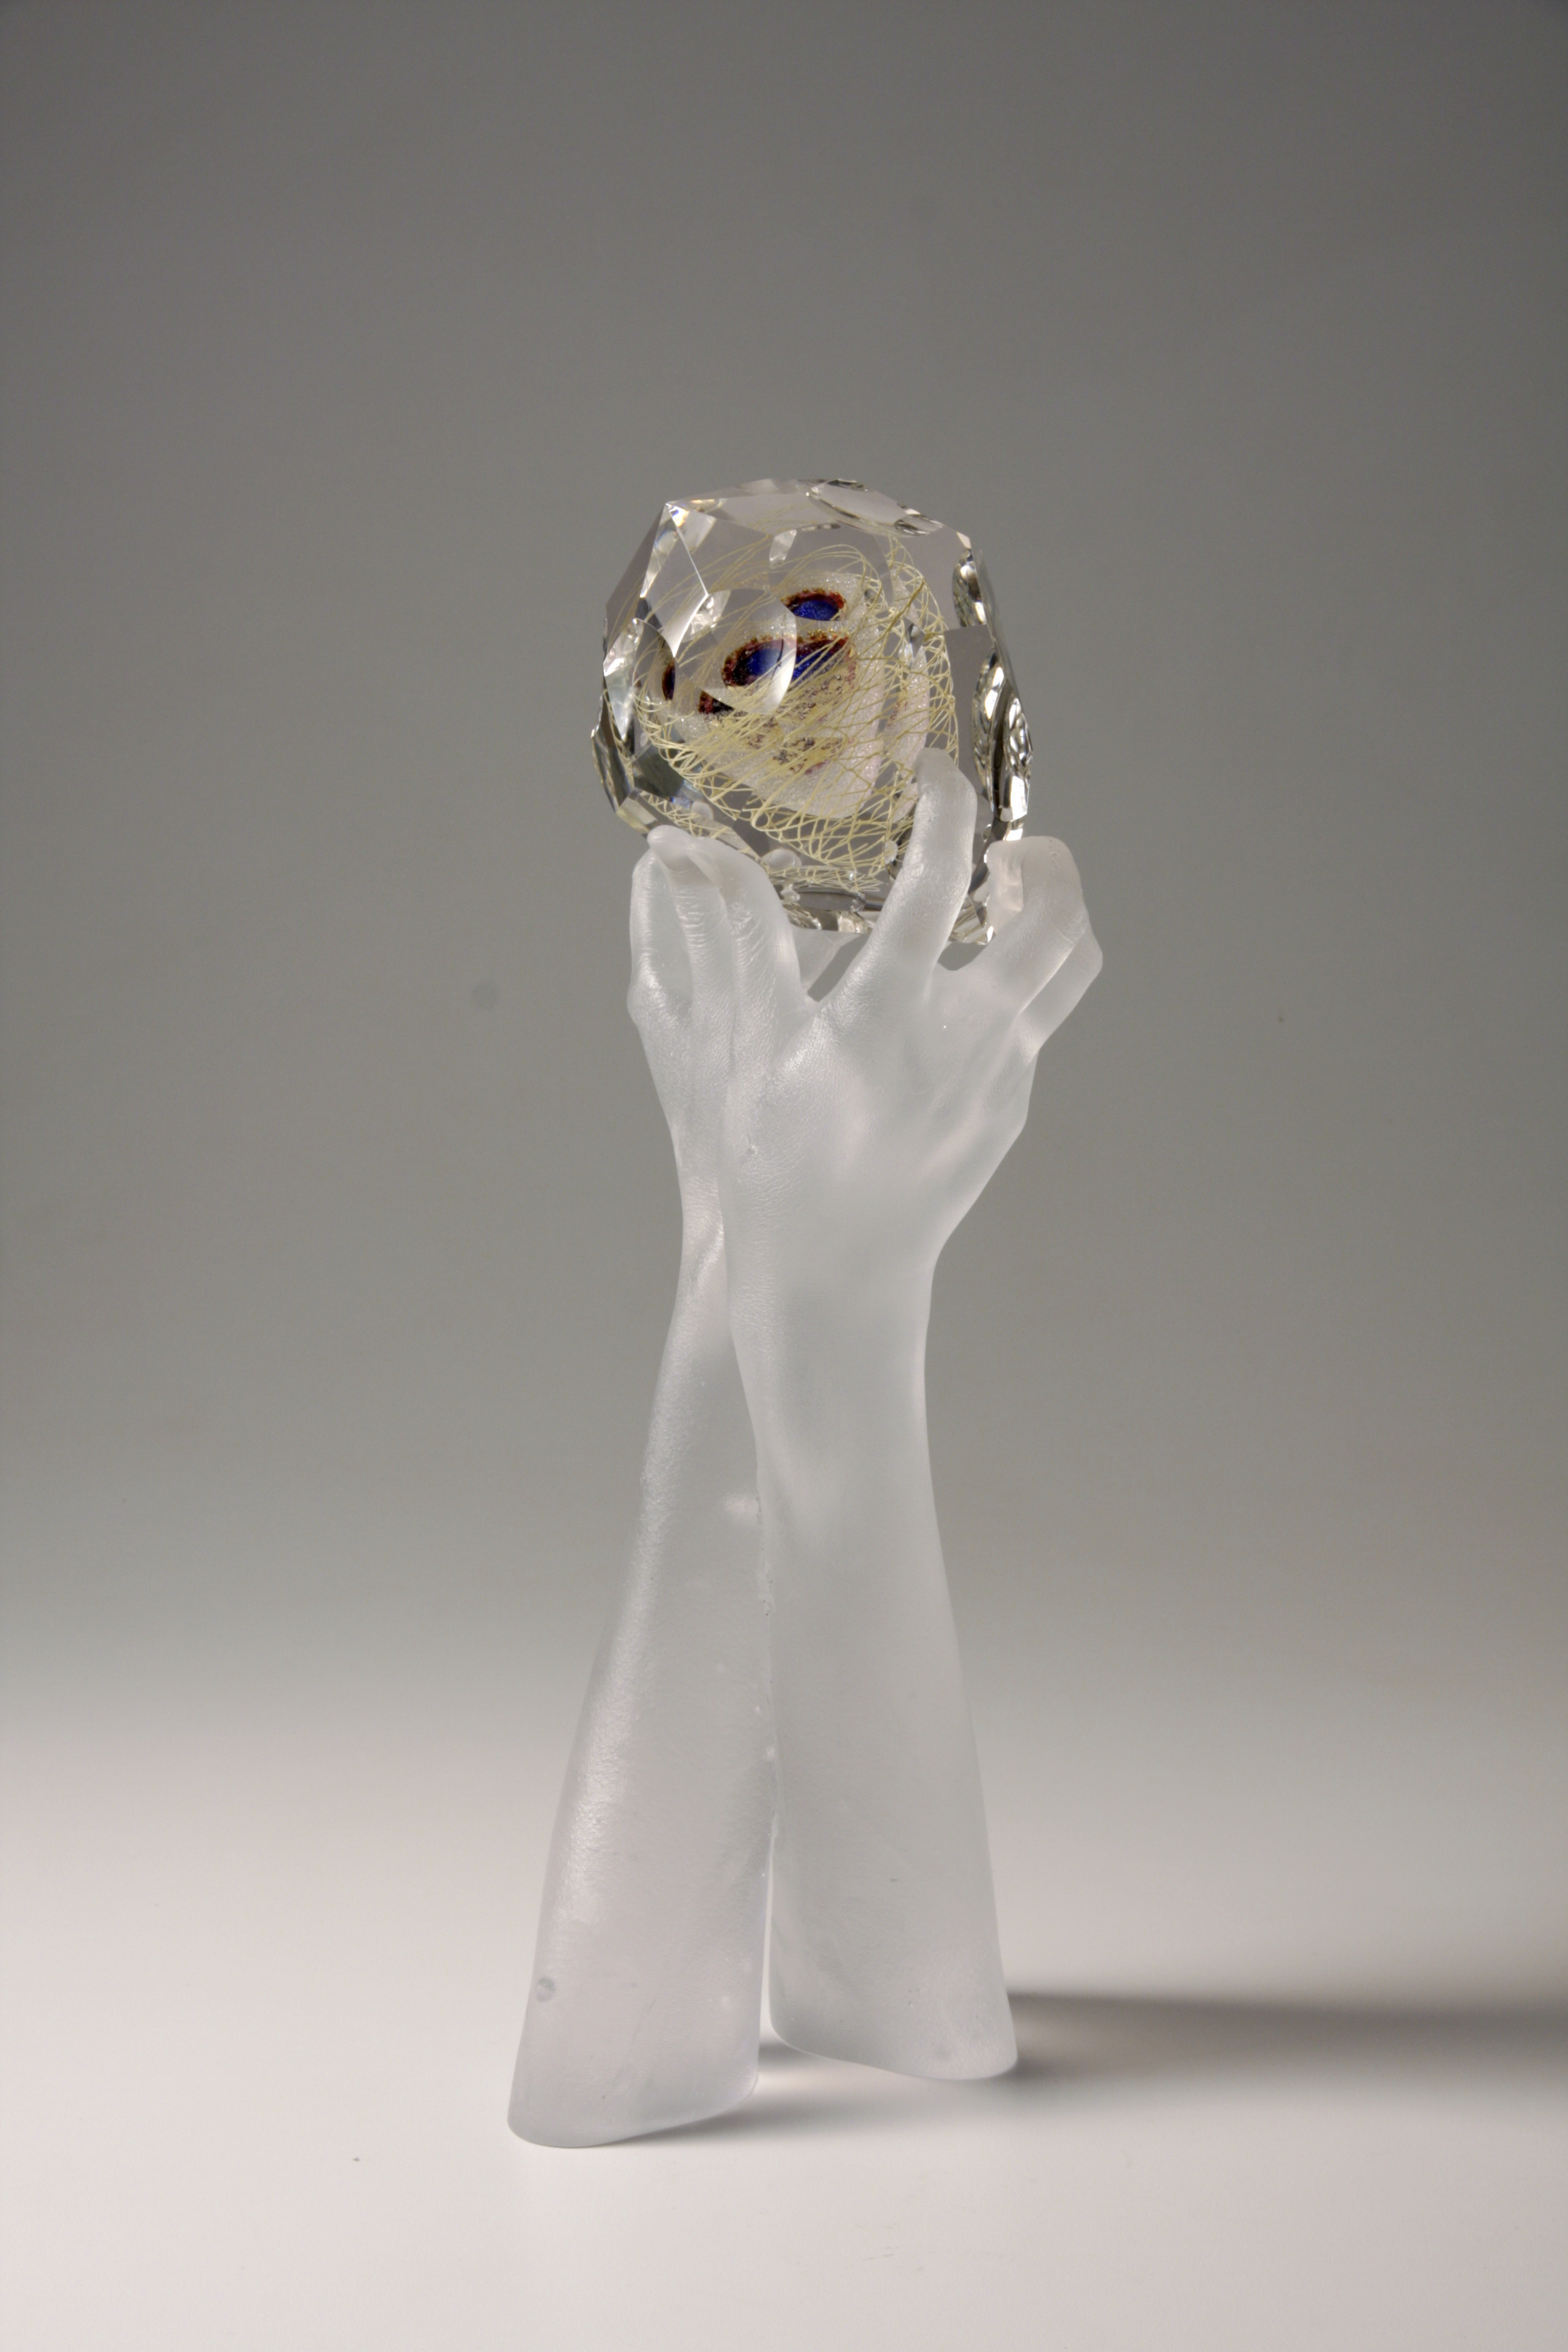 Side view of sculpture of clear glass hands holding faceted glass gem containing blue, purple, ruby, gold, and mica.